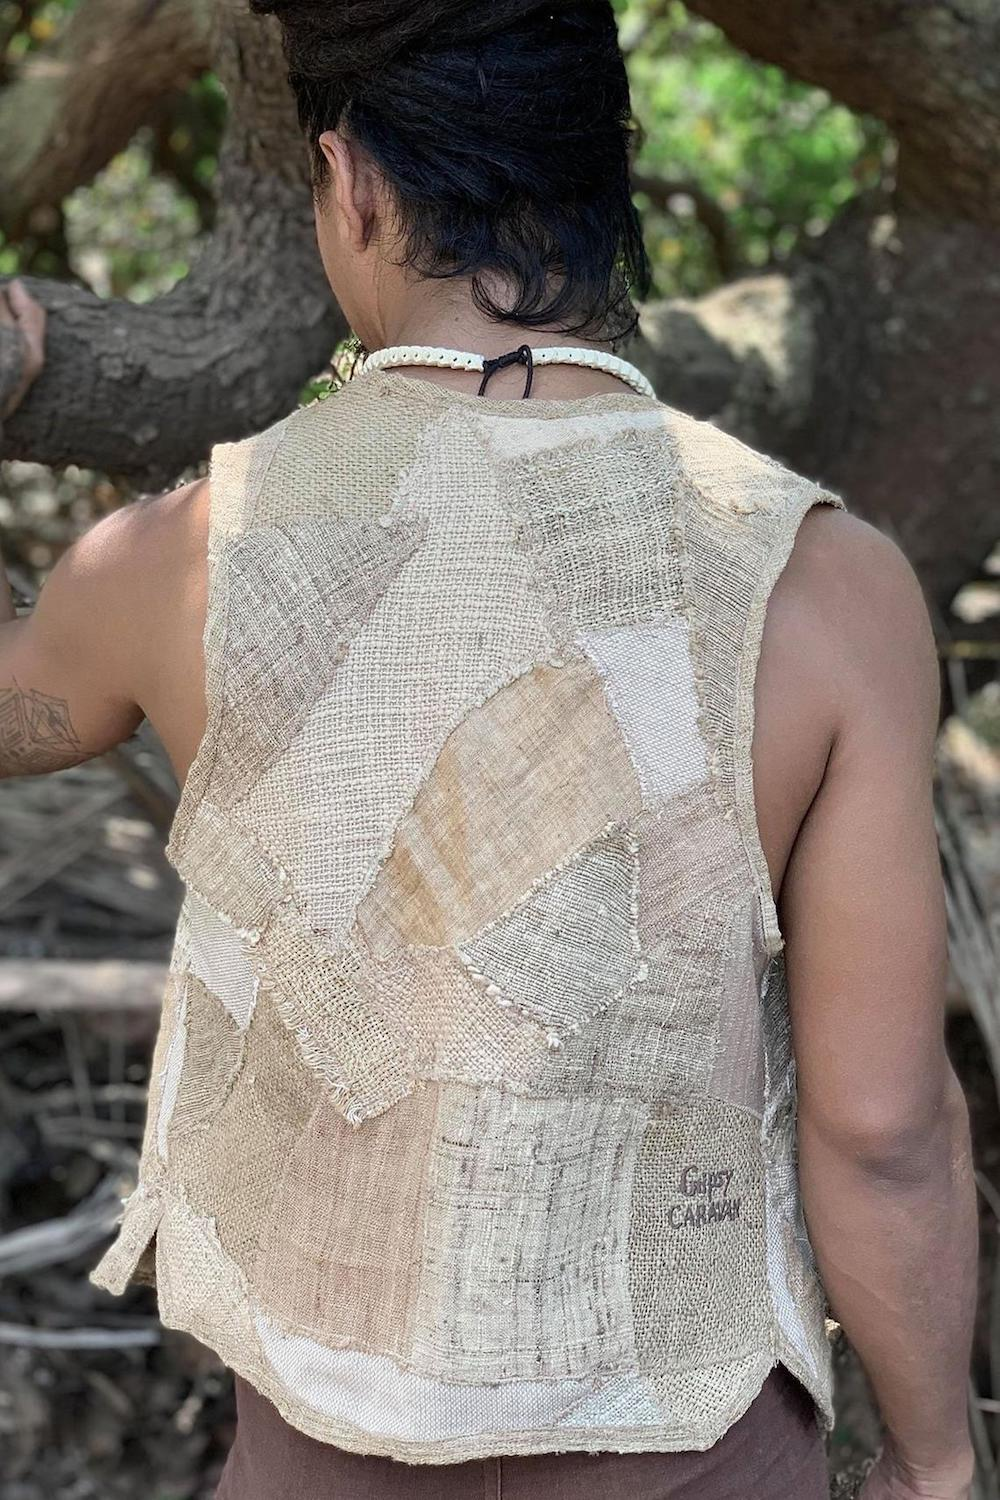 Gipsy Caravan One of a kind earthy Man patched vest